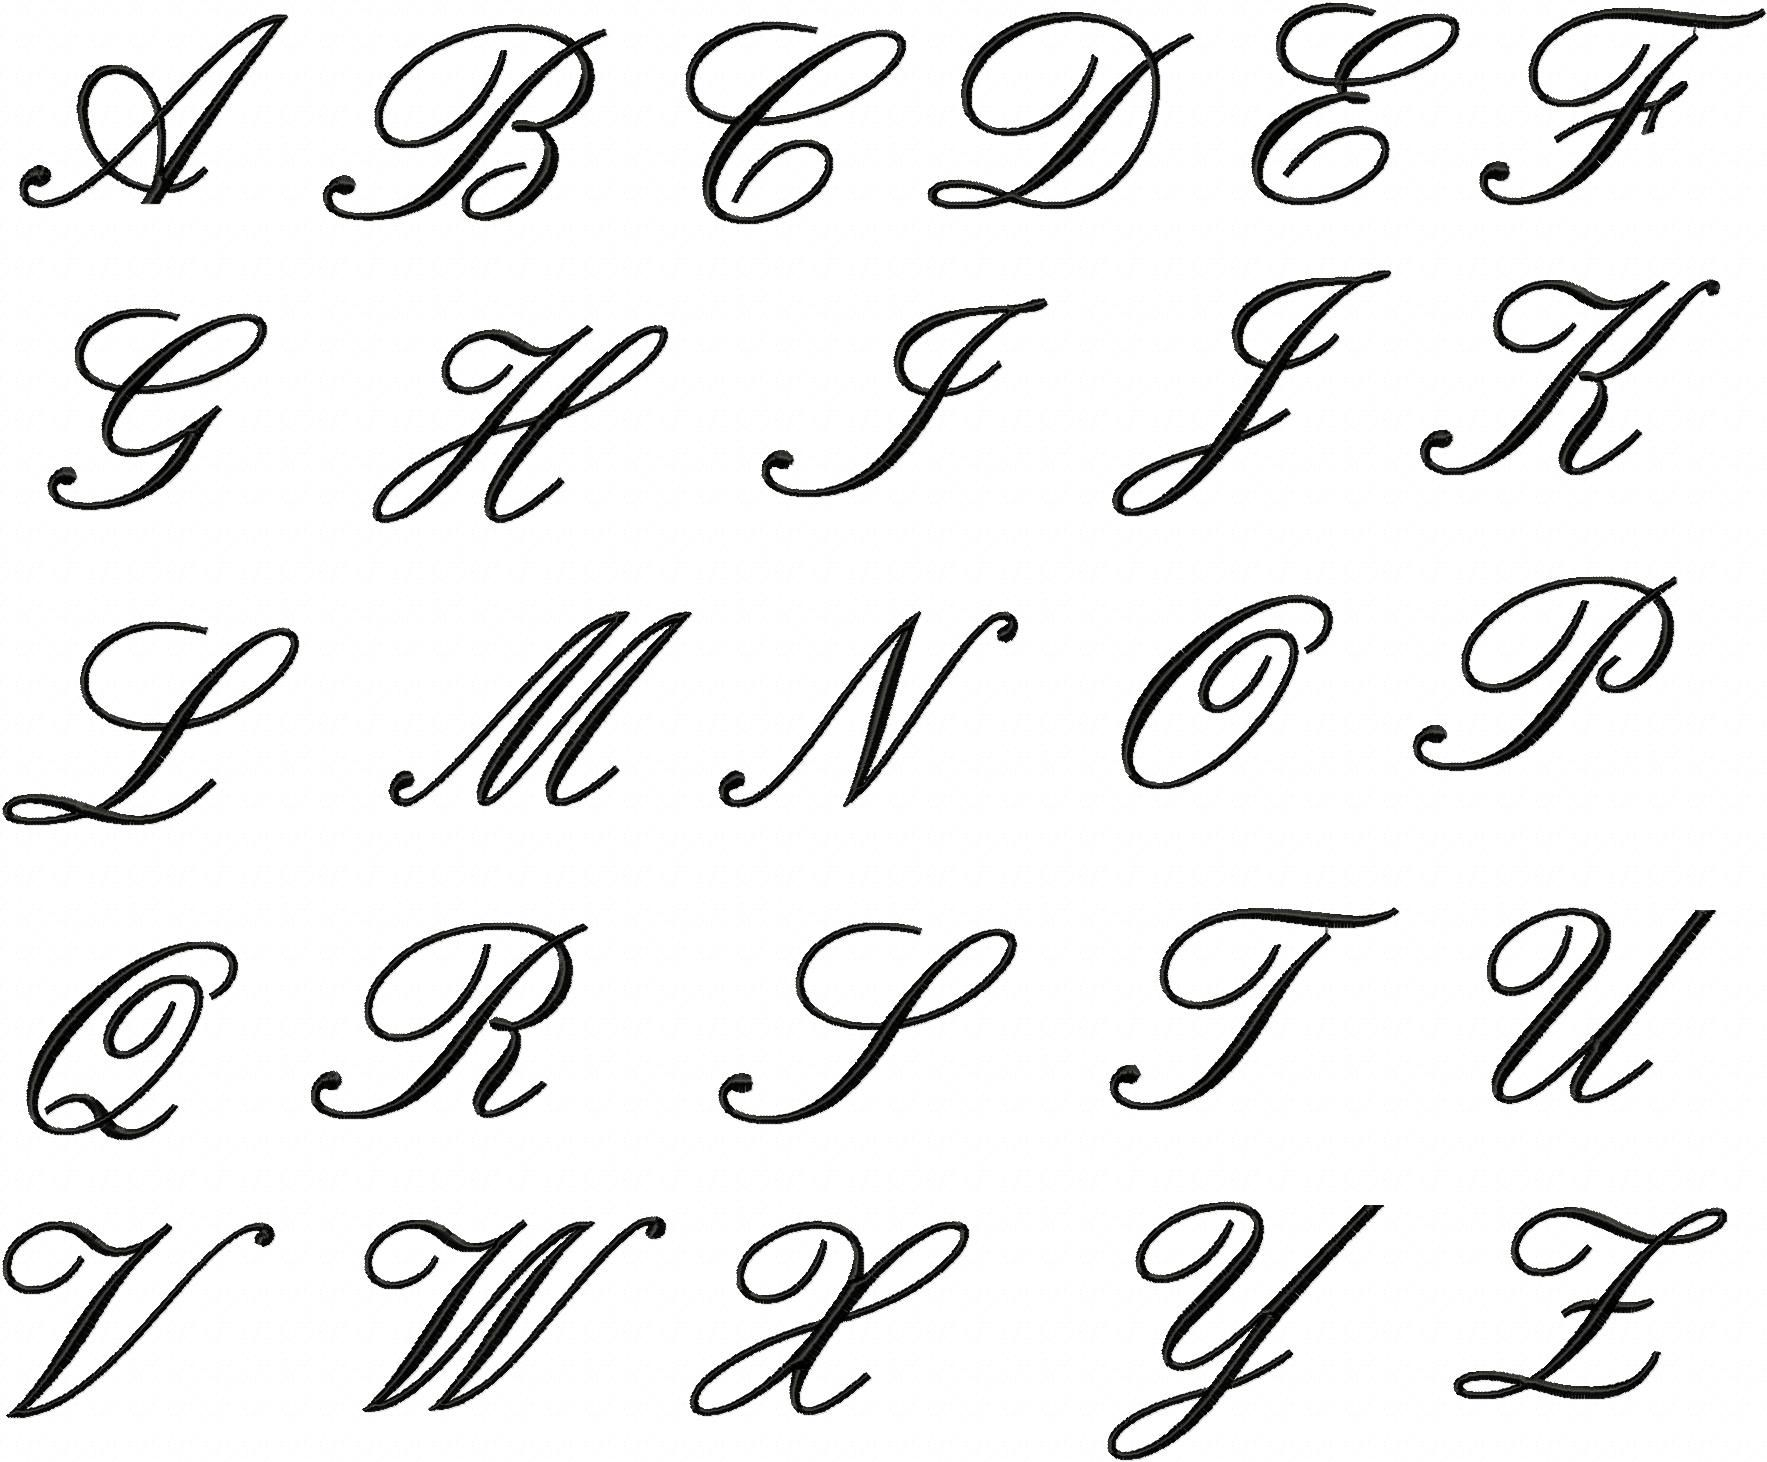 Embroidery Font Deal Part II 50 Machine Embroidery Fonts